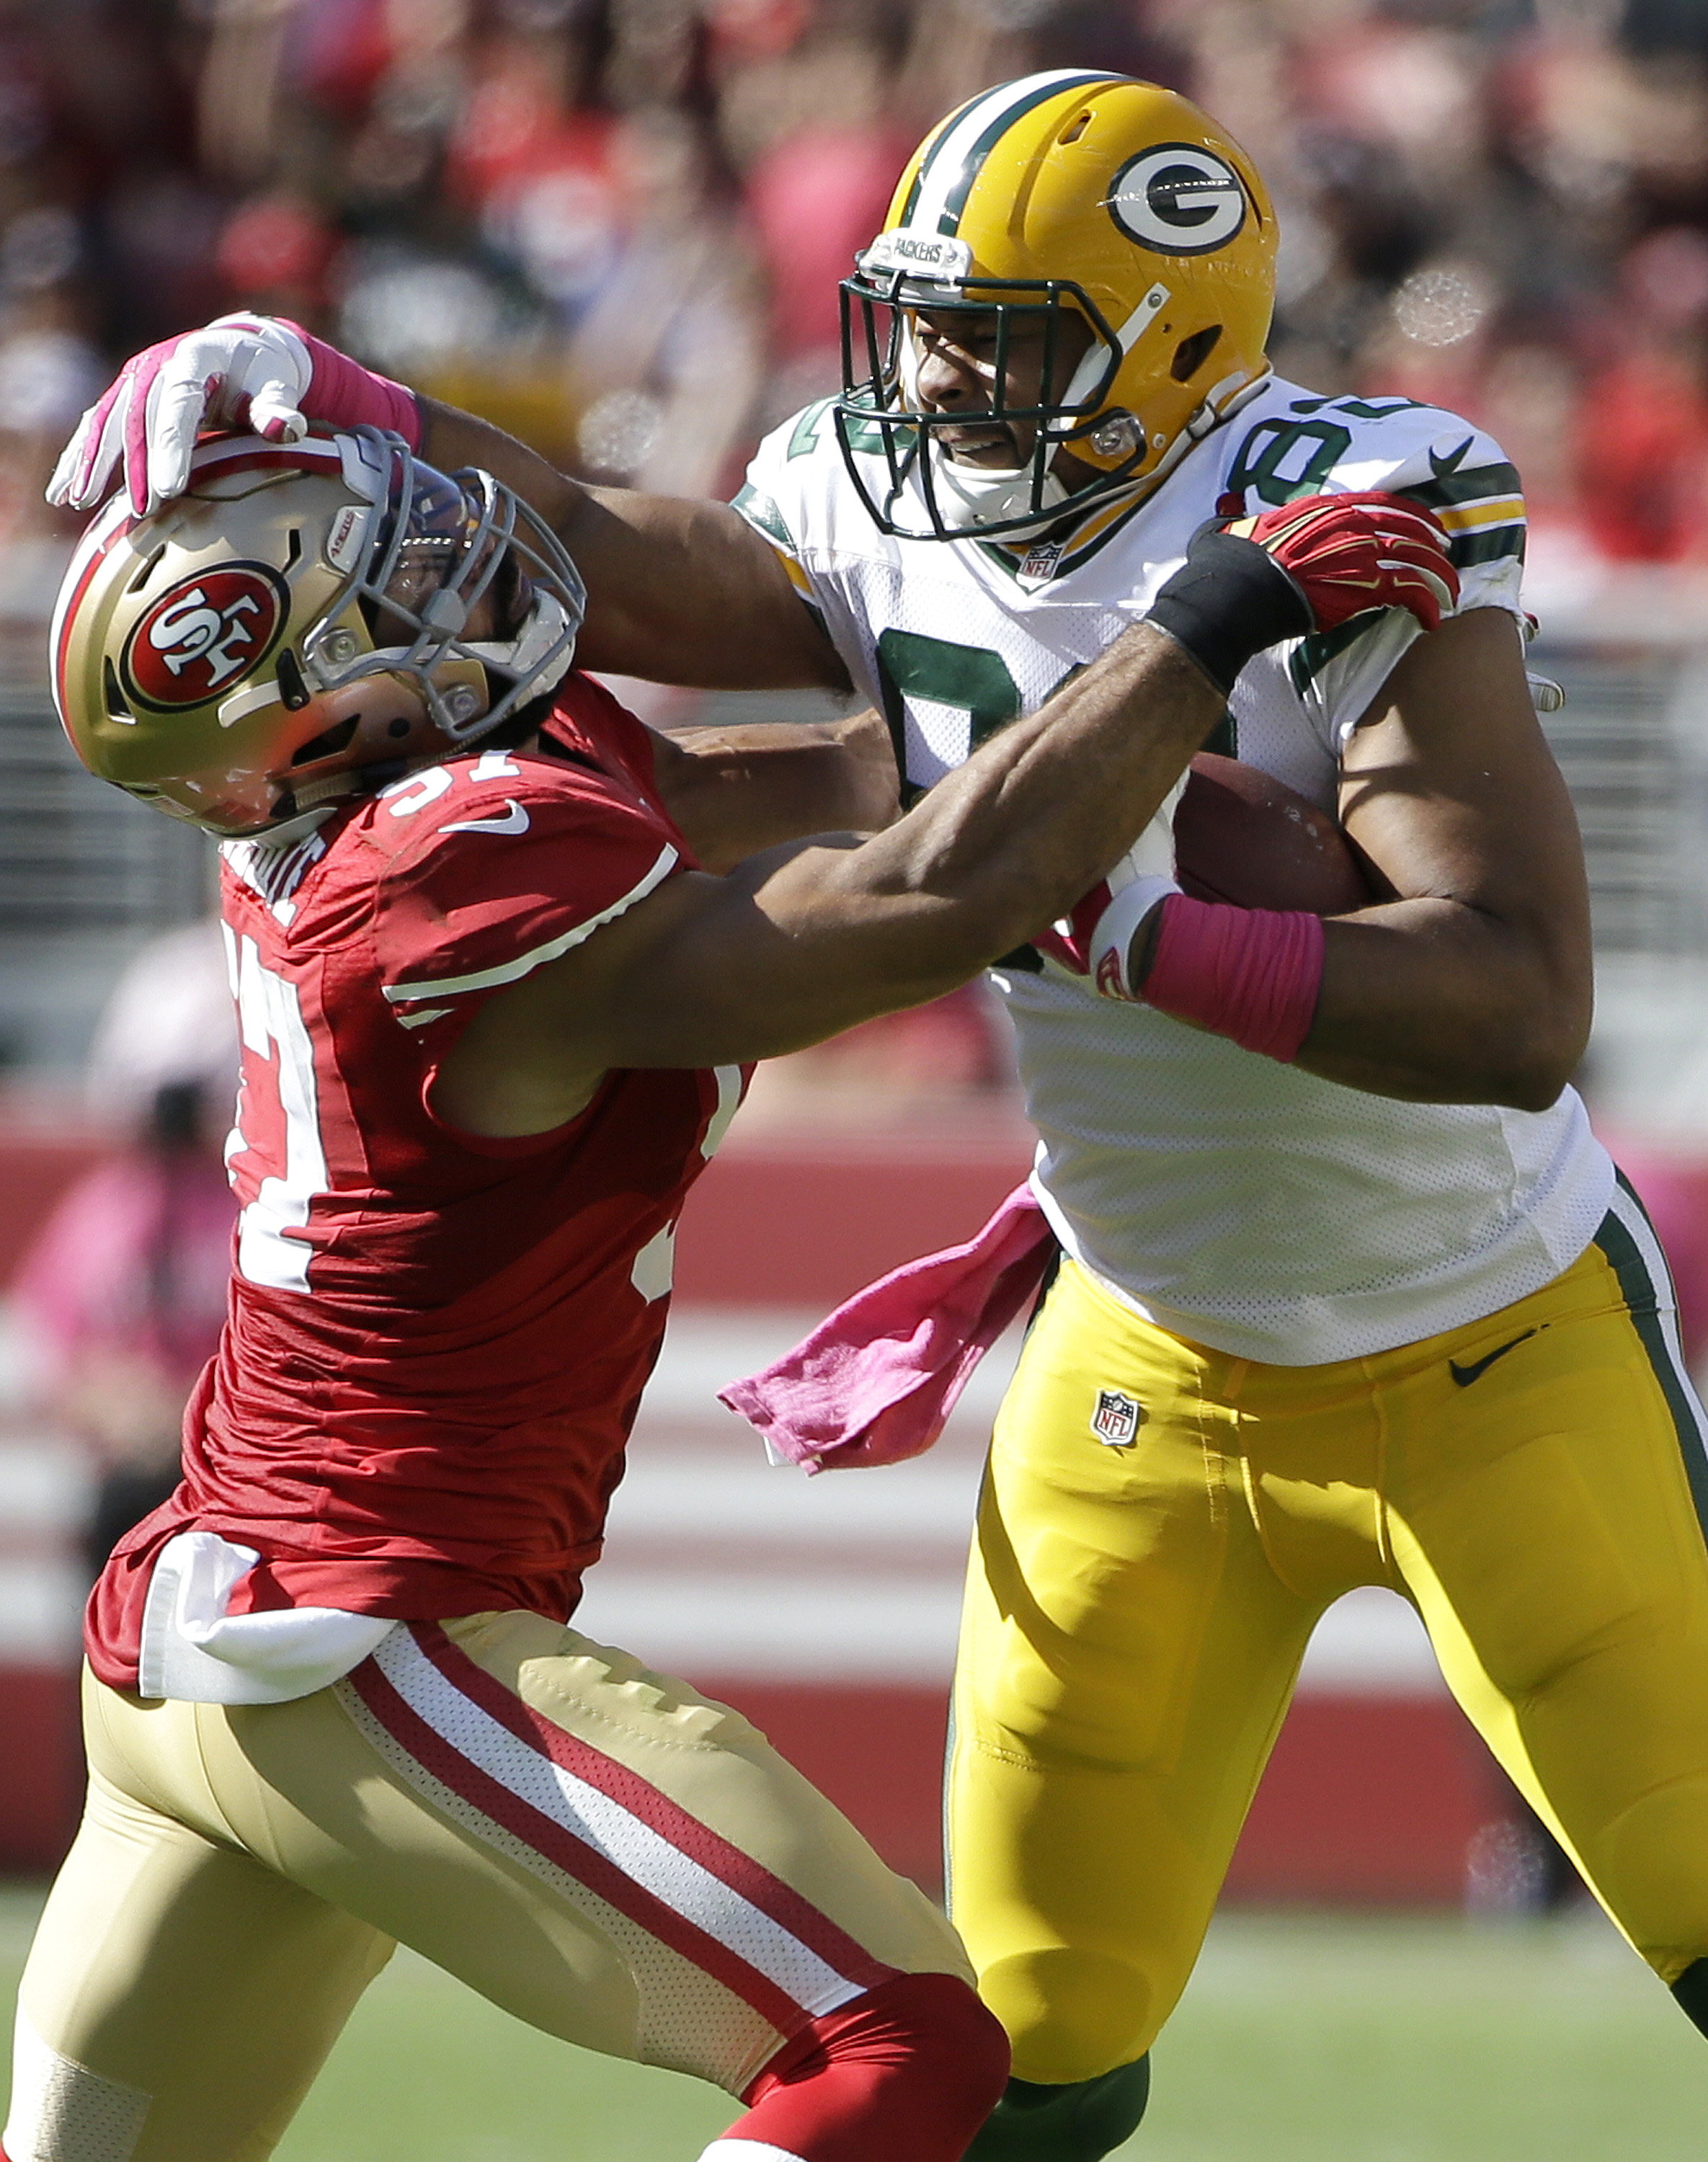 Green Bay Packers tight end Richard Rodgers (82) runs against San Francisco 49ers linebacker Michael Wilhoite (57) during the second half of an NFL football game in Santa Clara, Calif., Sunday, Oct. 4, 2015. (AP Photo/Marcio Jose Sanchez)